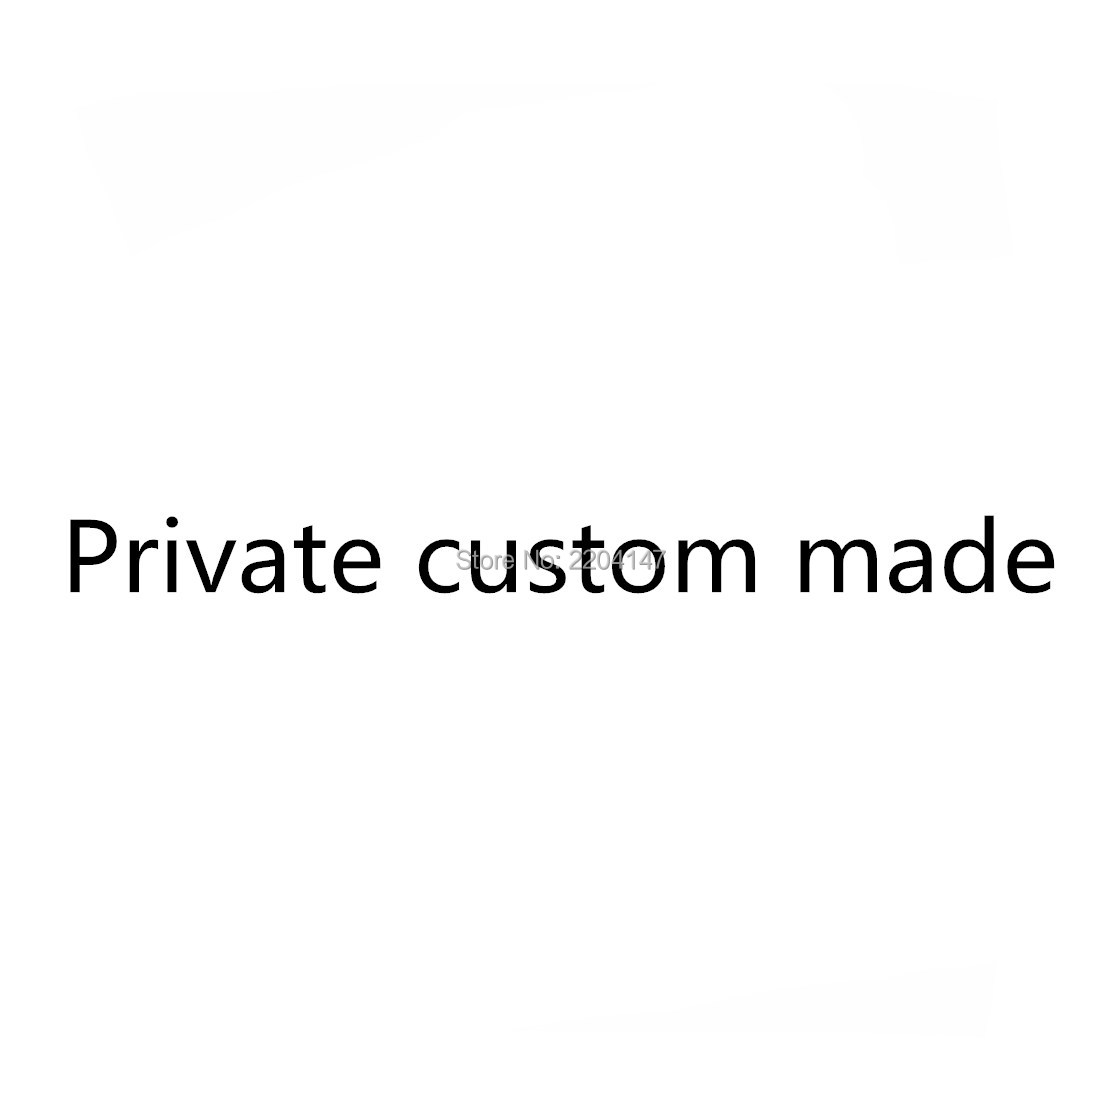 Private custom links for Canon  Second-hand camerasPrivate custom links for Canon  Second-hand cameras